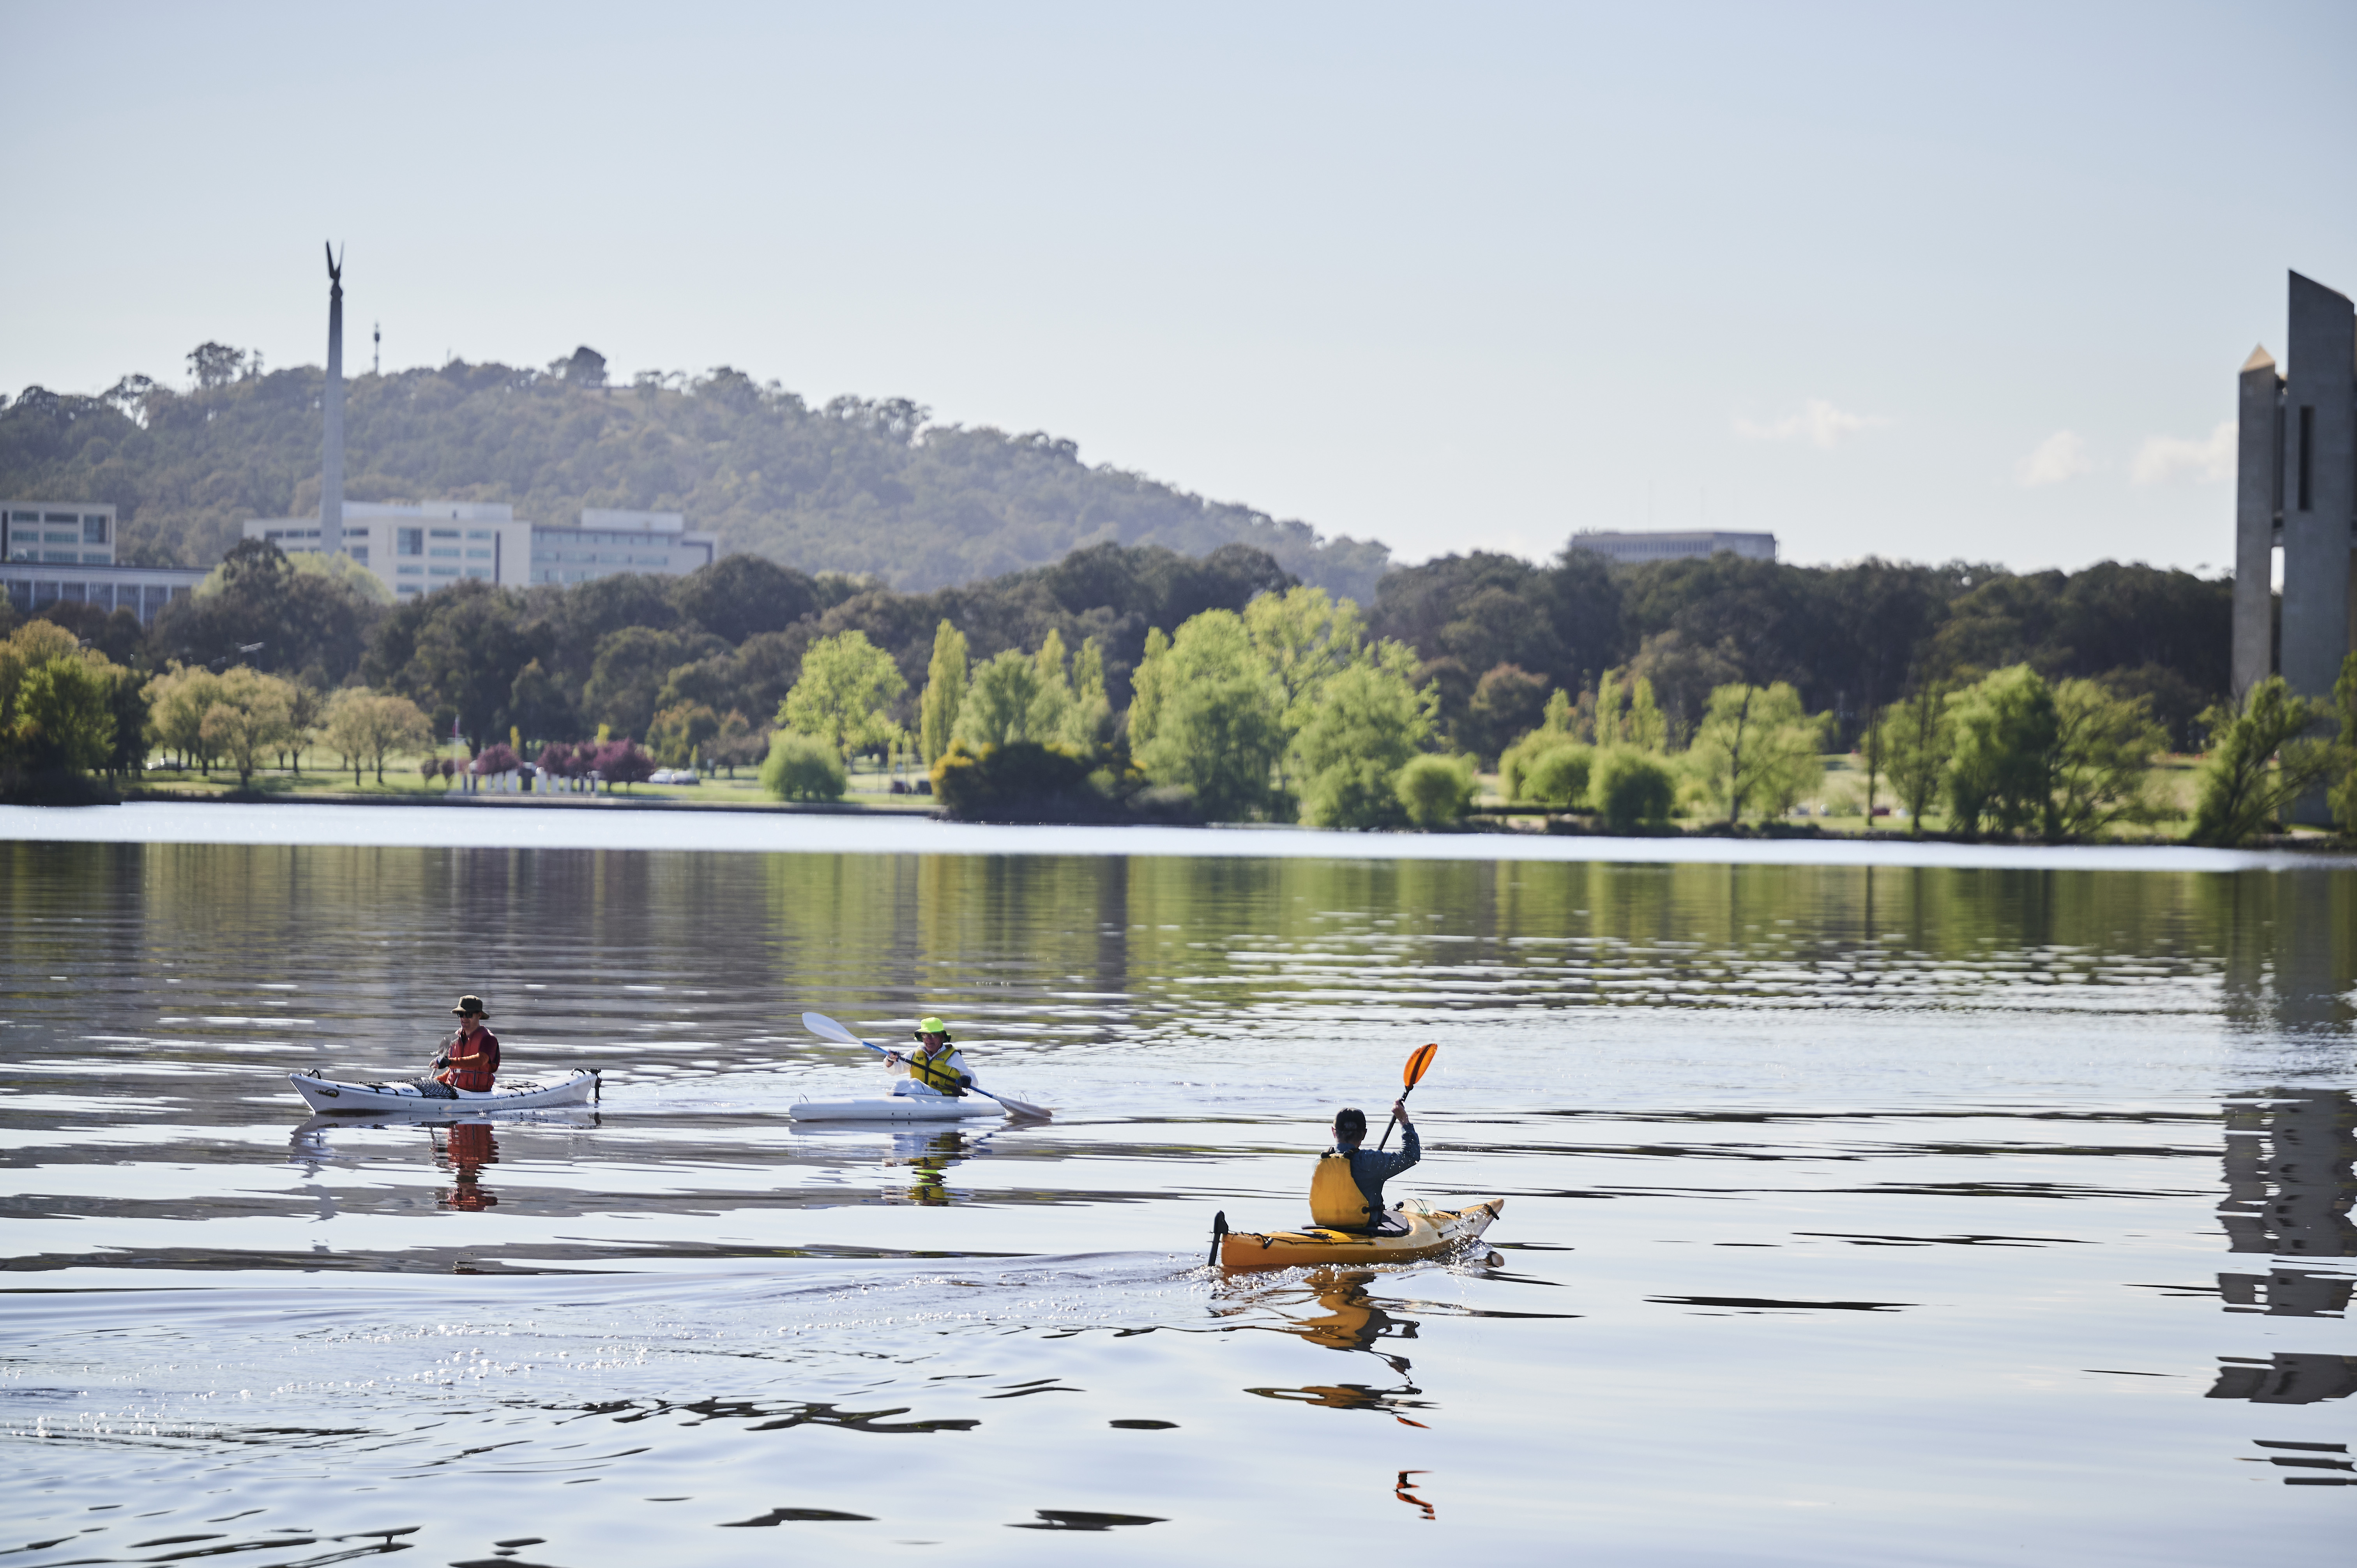 CANBERRA, AUSTRALIA - OCTOBER 08: Kayakers on Lake Burley Griffin on October 08, 2021 in Canberra, Australia. Lockdown restrictions remain in place for Canberra, with residents subject to stay-at-home orders as the ACT continues to record new local COVID-19 cases. The current lockdown restrictions are due to remain in place until Friday 15 October 2021. (Photo by Rohan Thomson/Getty Images)